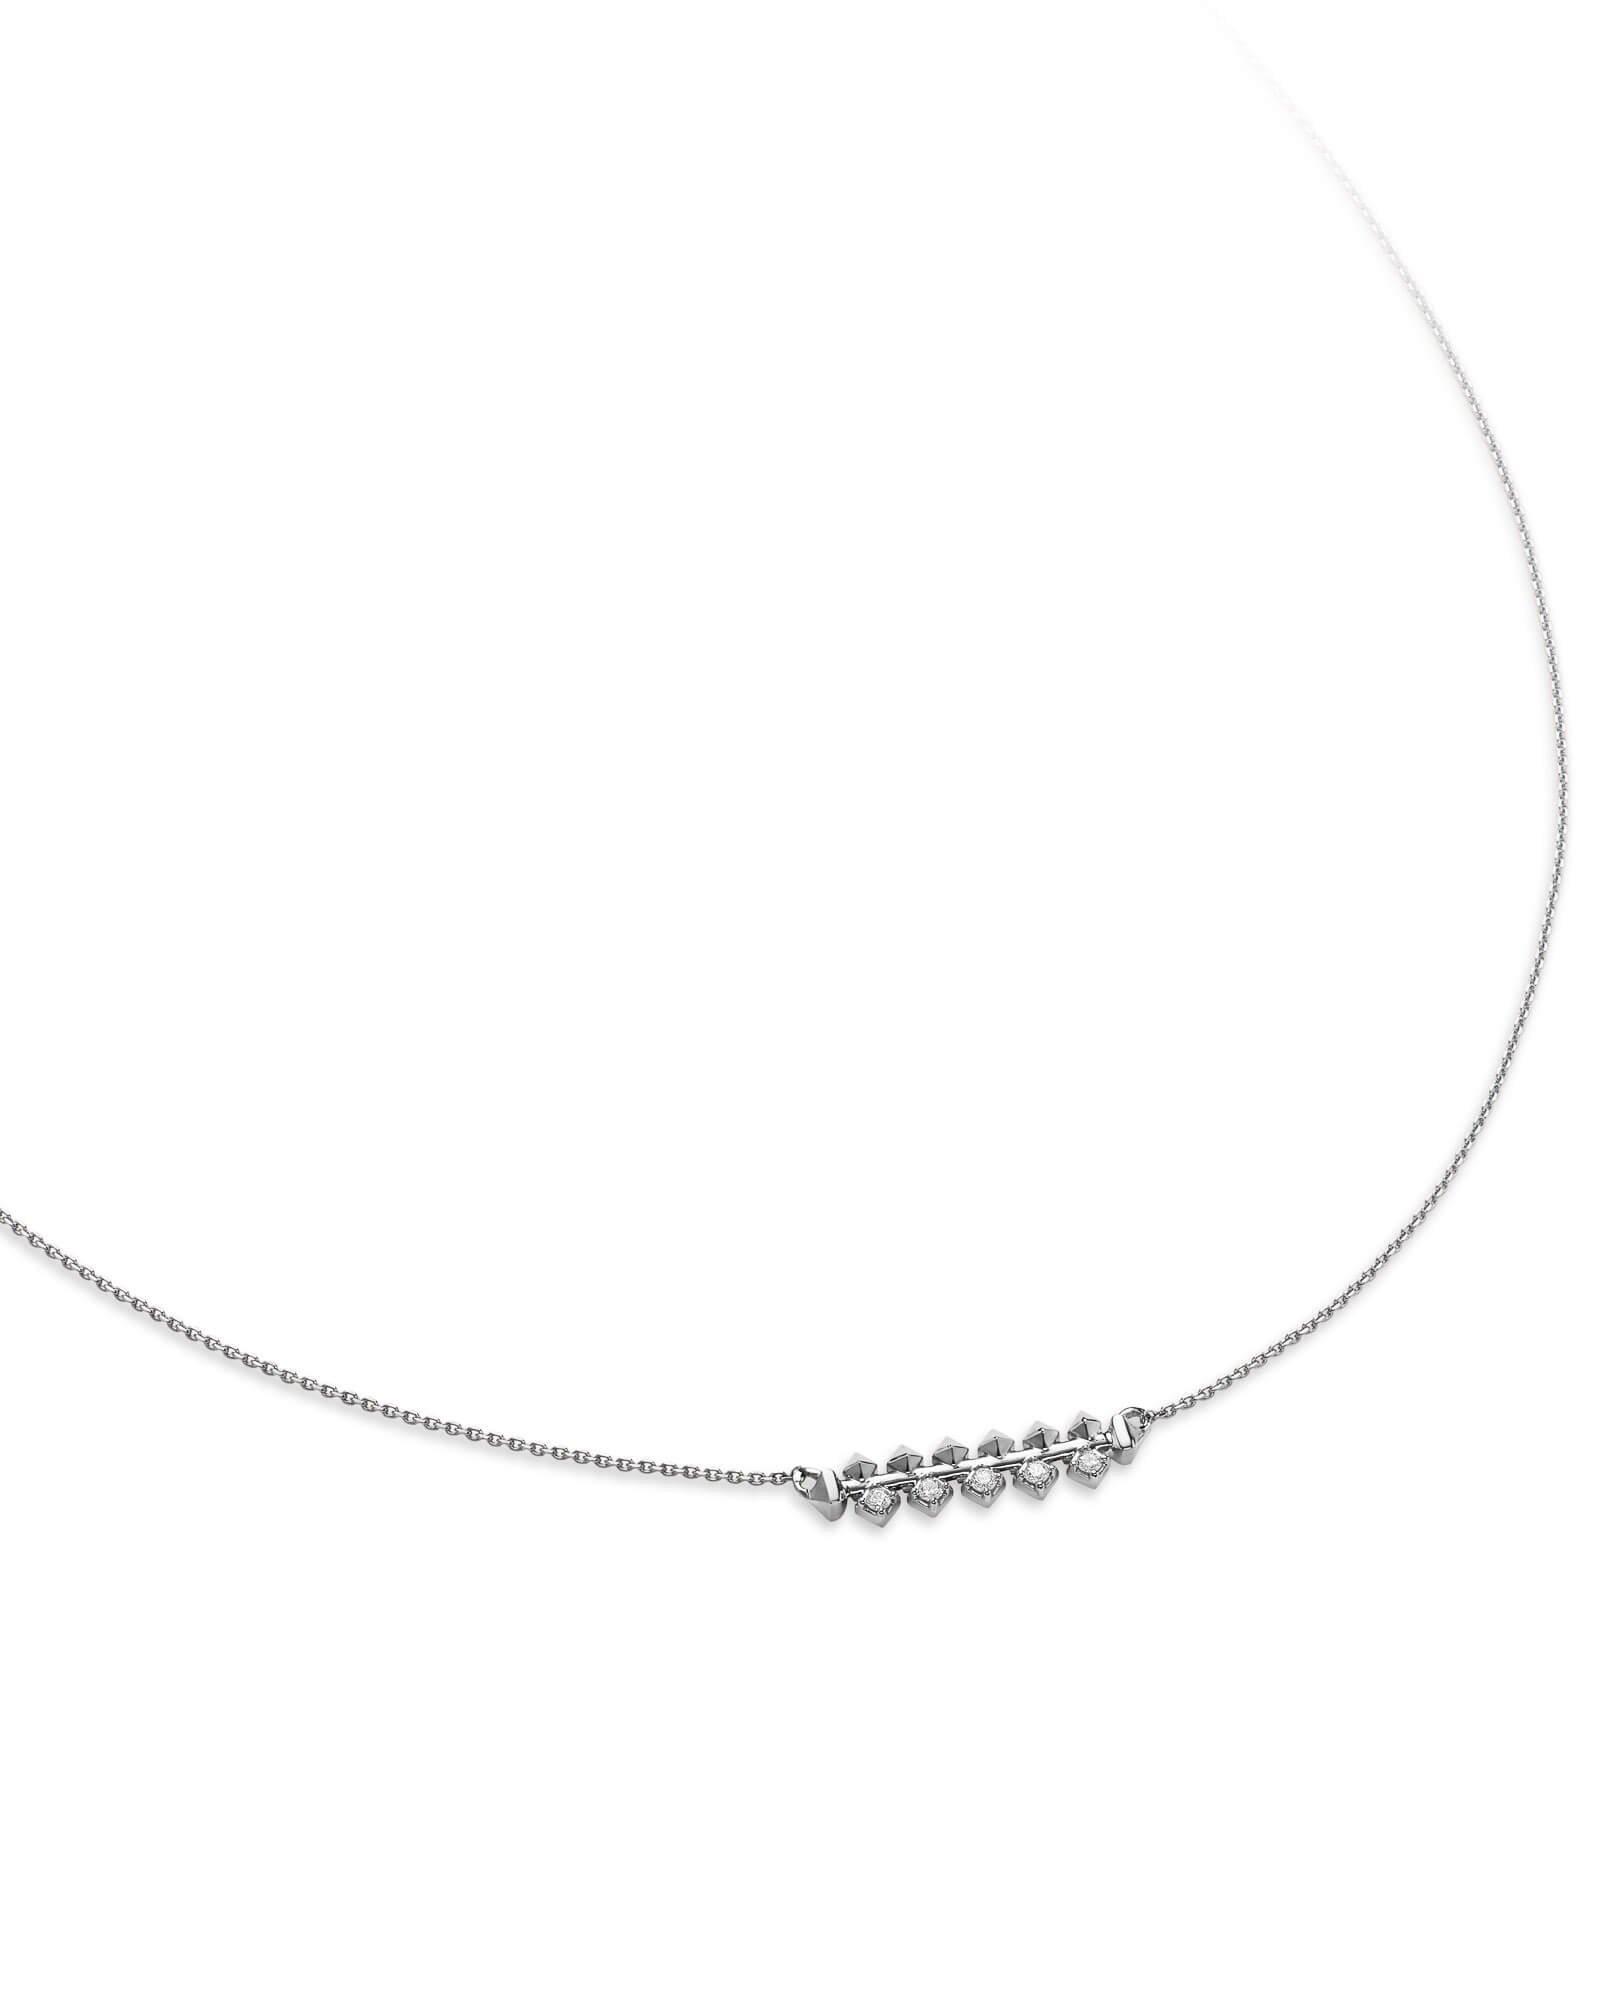 Silas 14k White Gold Necklace in White Diamond